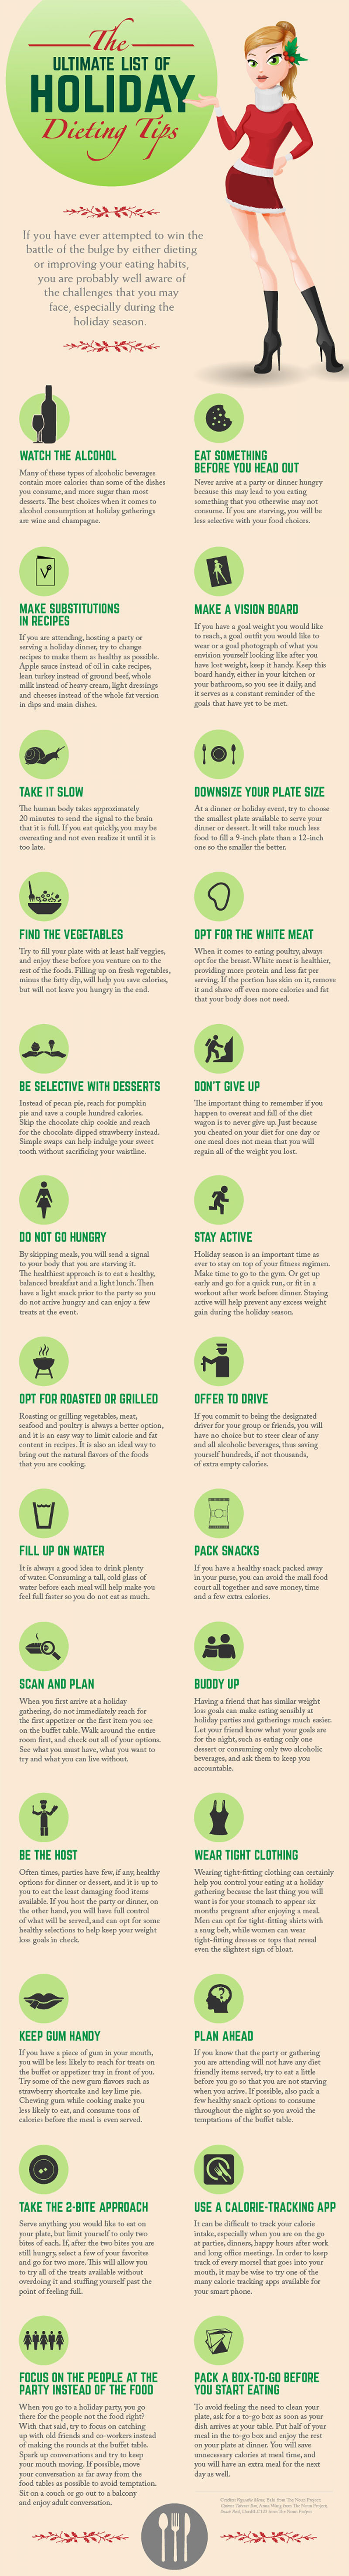 best-list-of-holiday-dieting-eating-tips